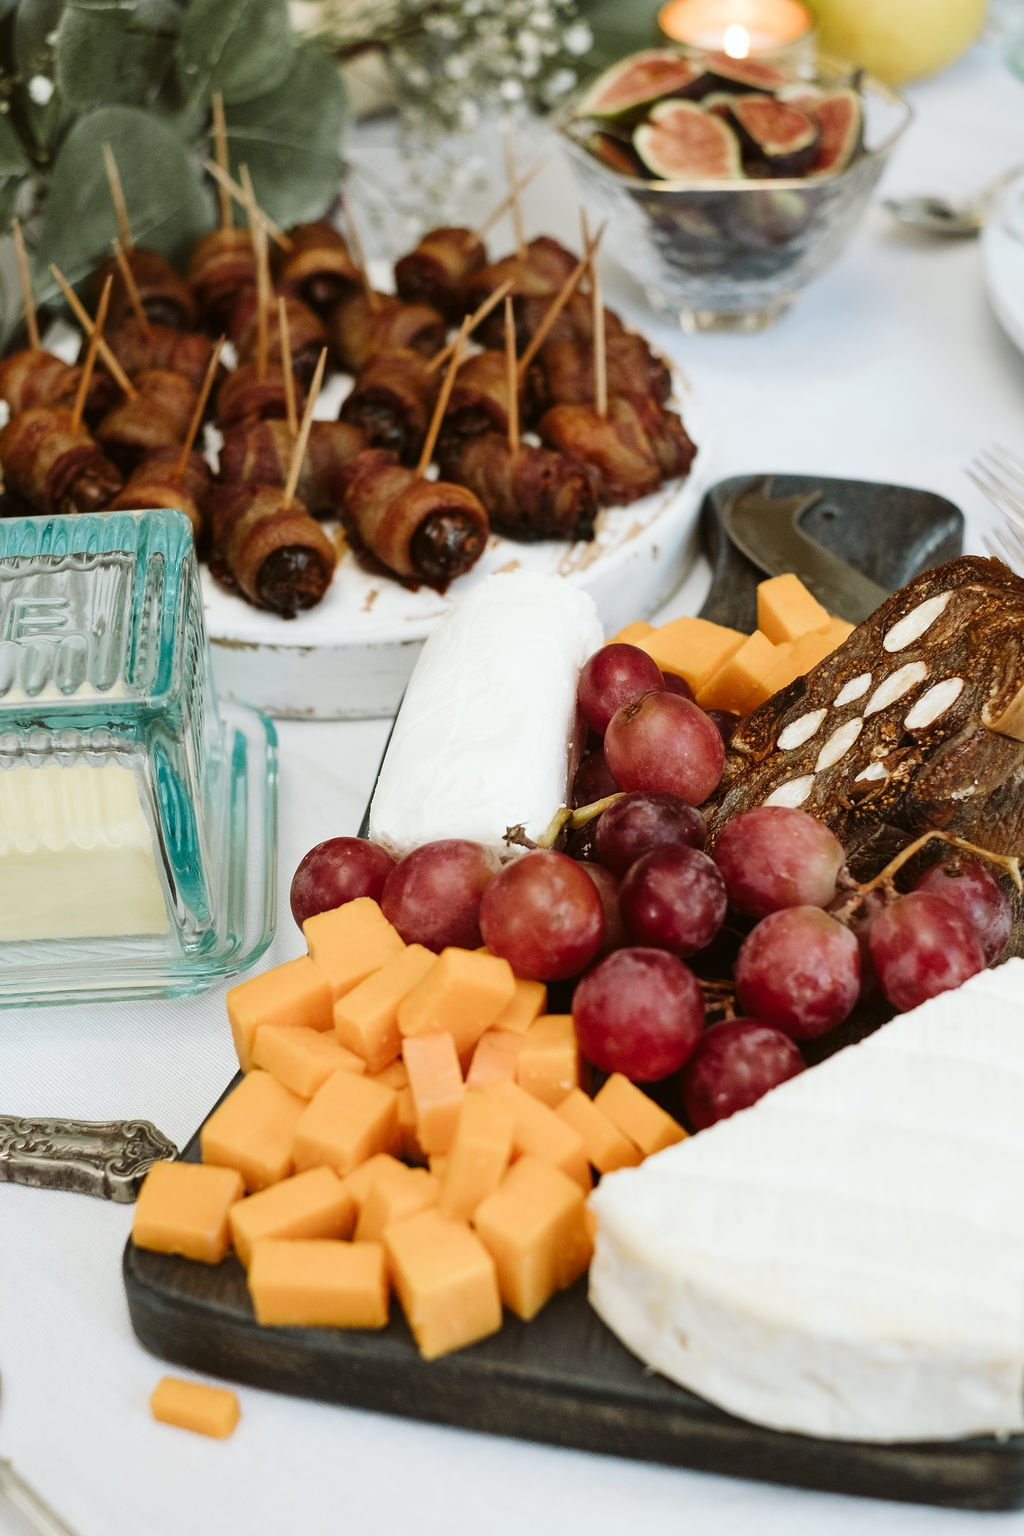 cheese and grapes on a charcuterie board